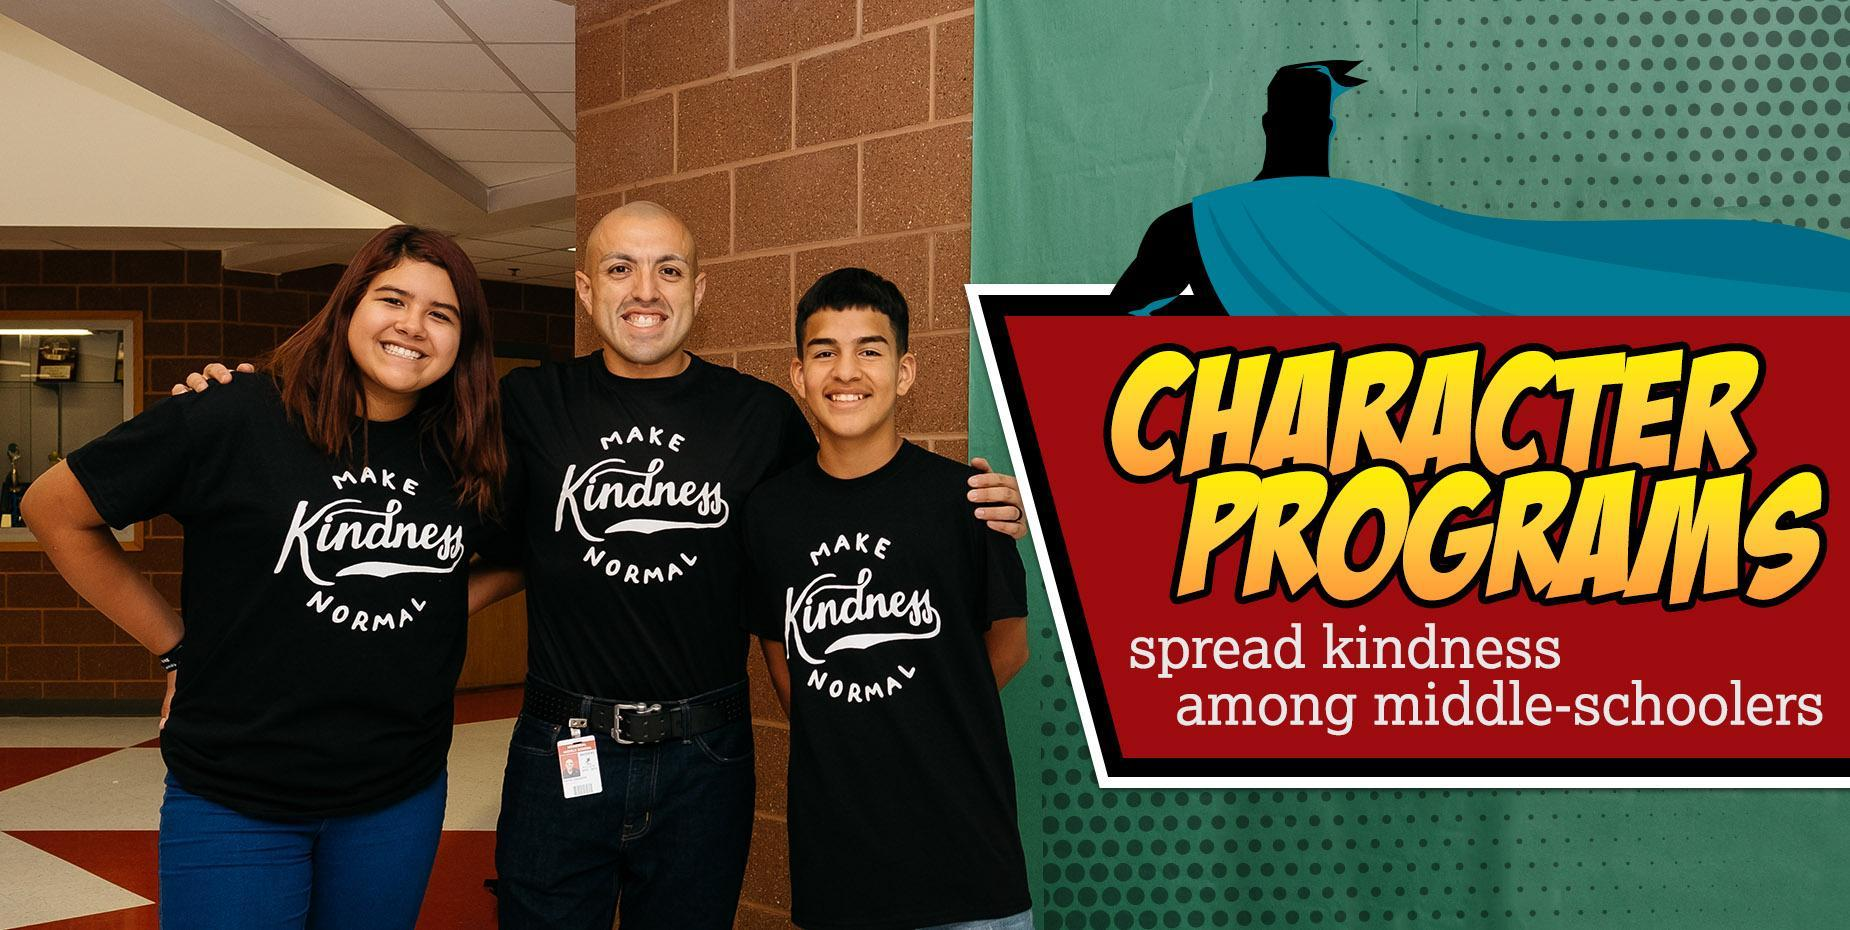 Character programs spread kindness among middle-schoolers